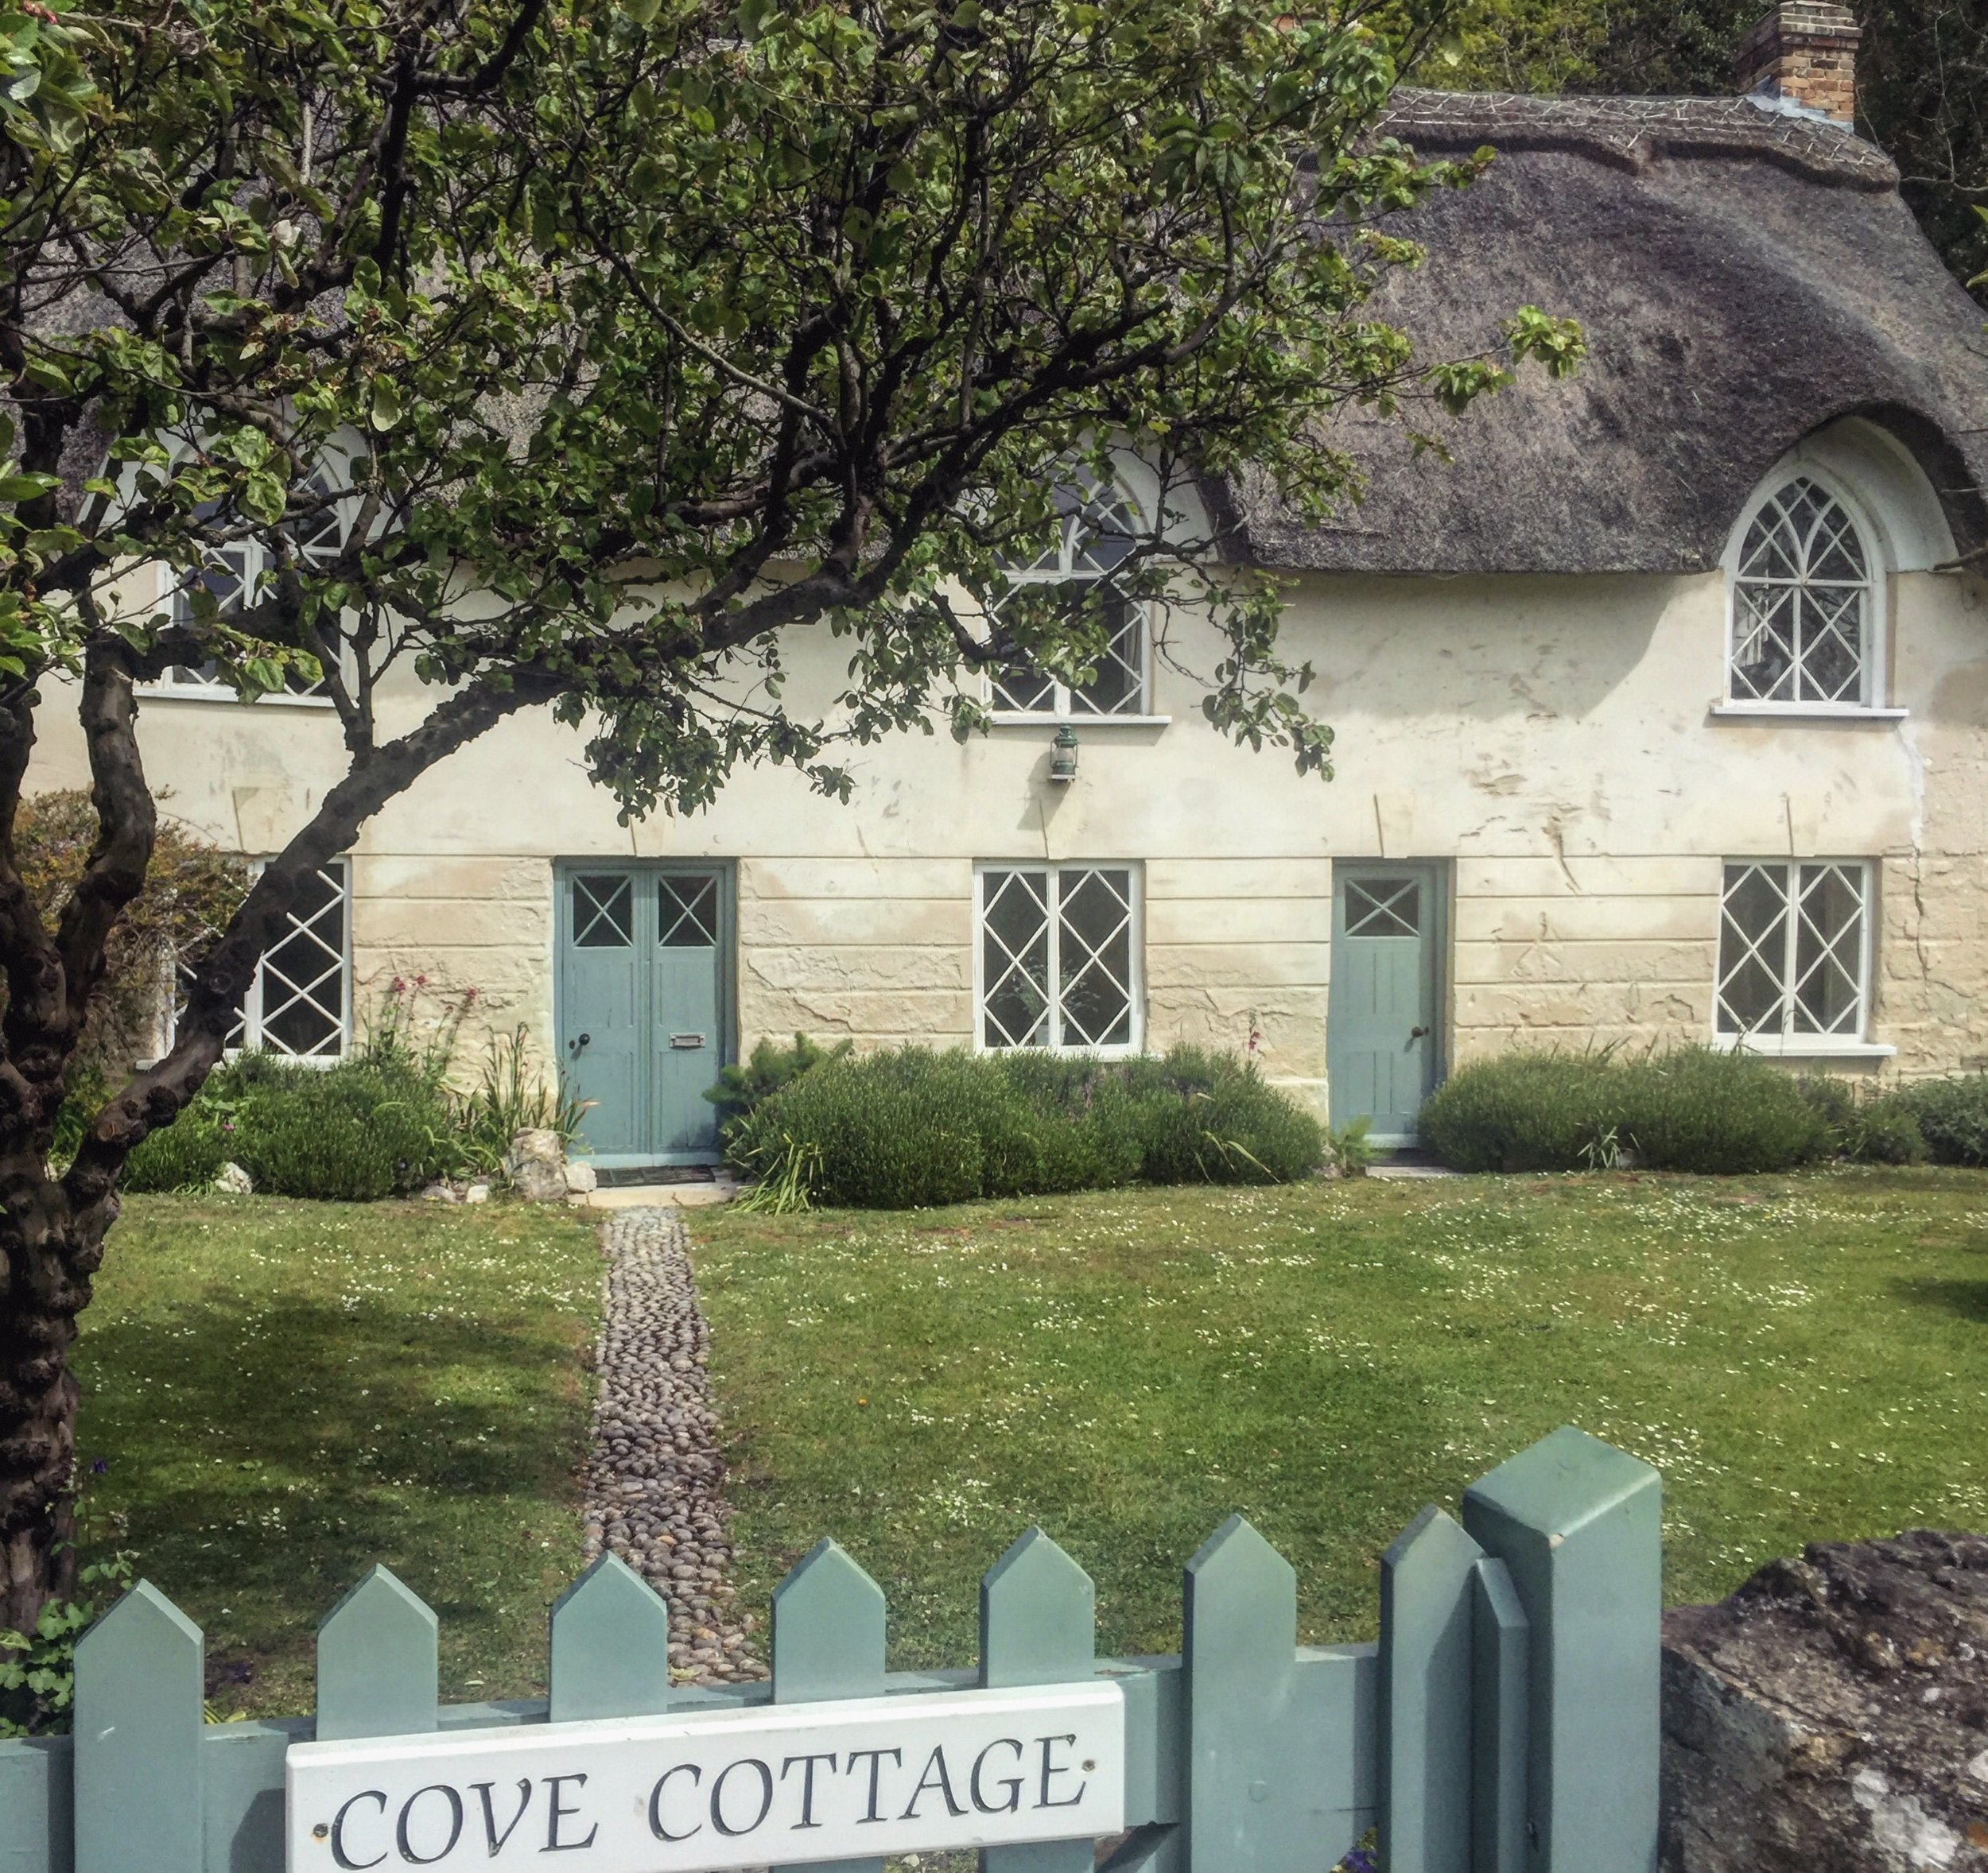 COVE COTTAGE .JPG